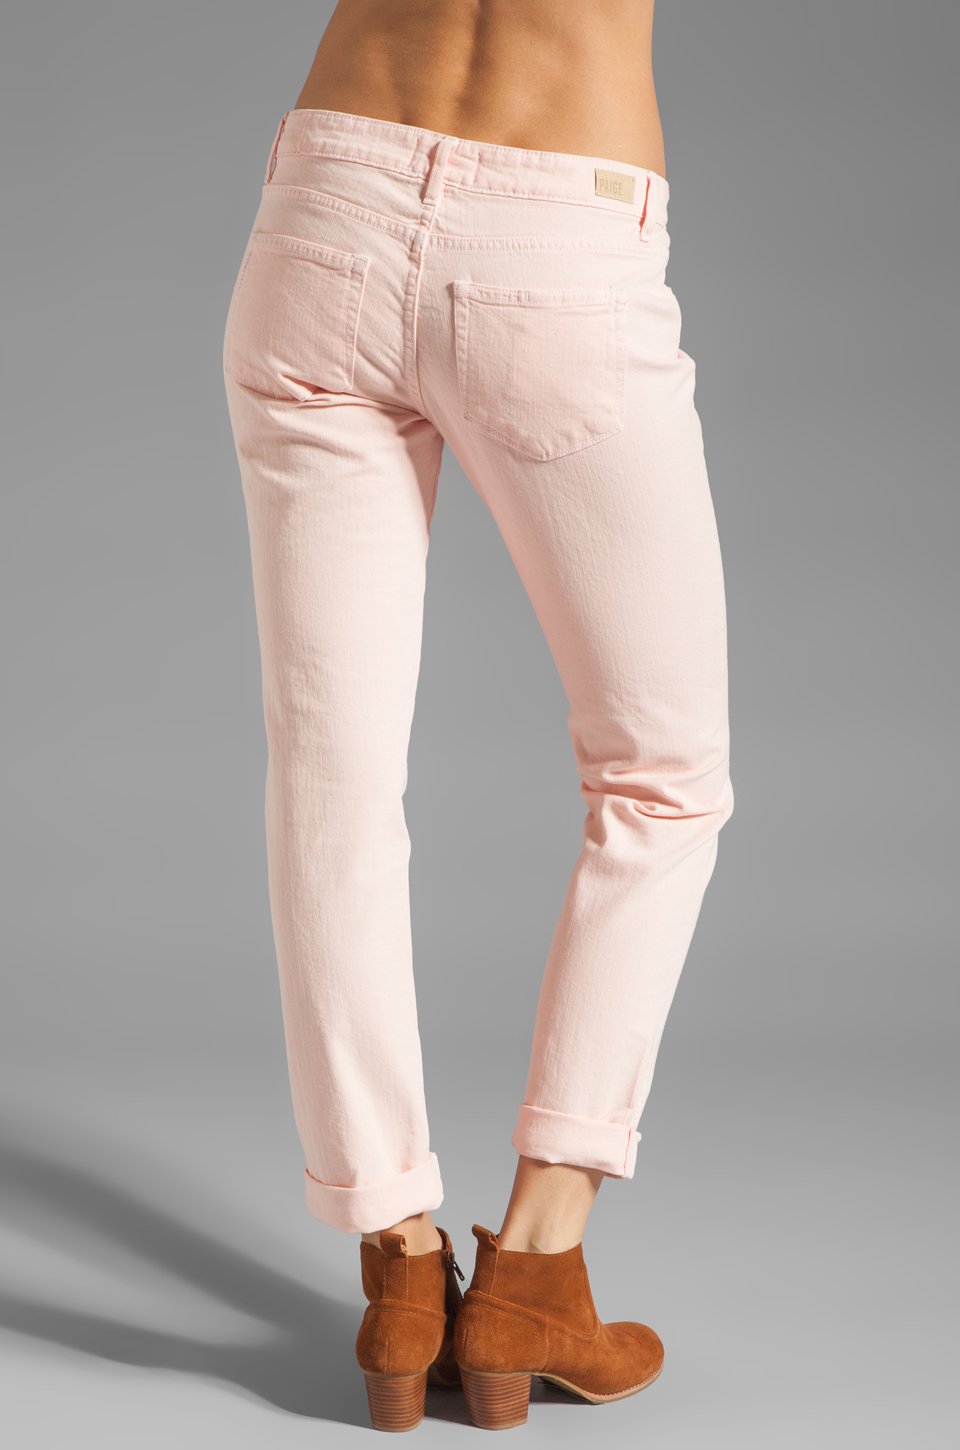 Paige Denim Jimmy Jimmy Skinny in Blossom